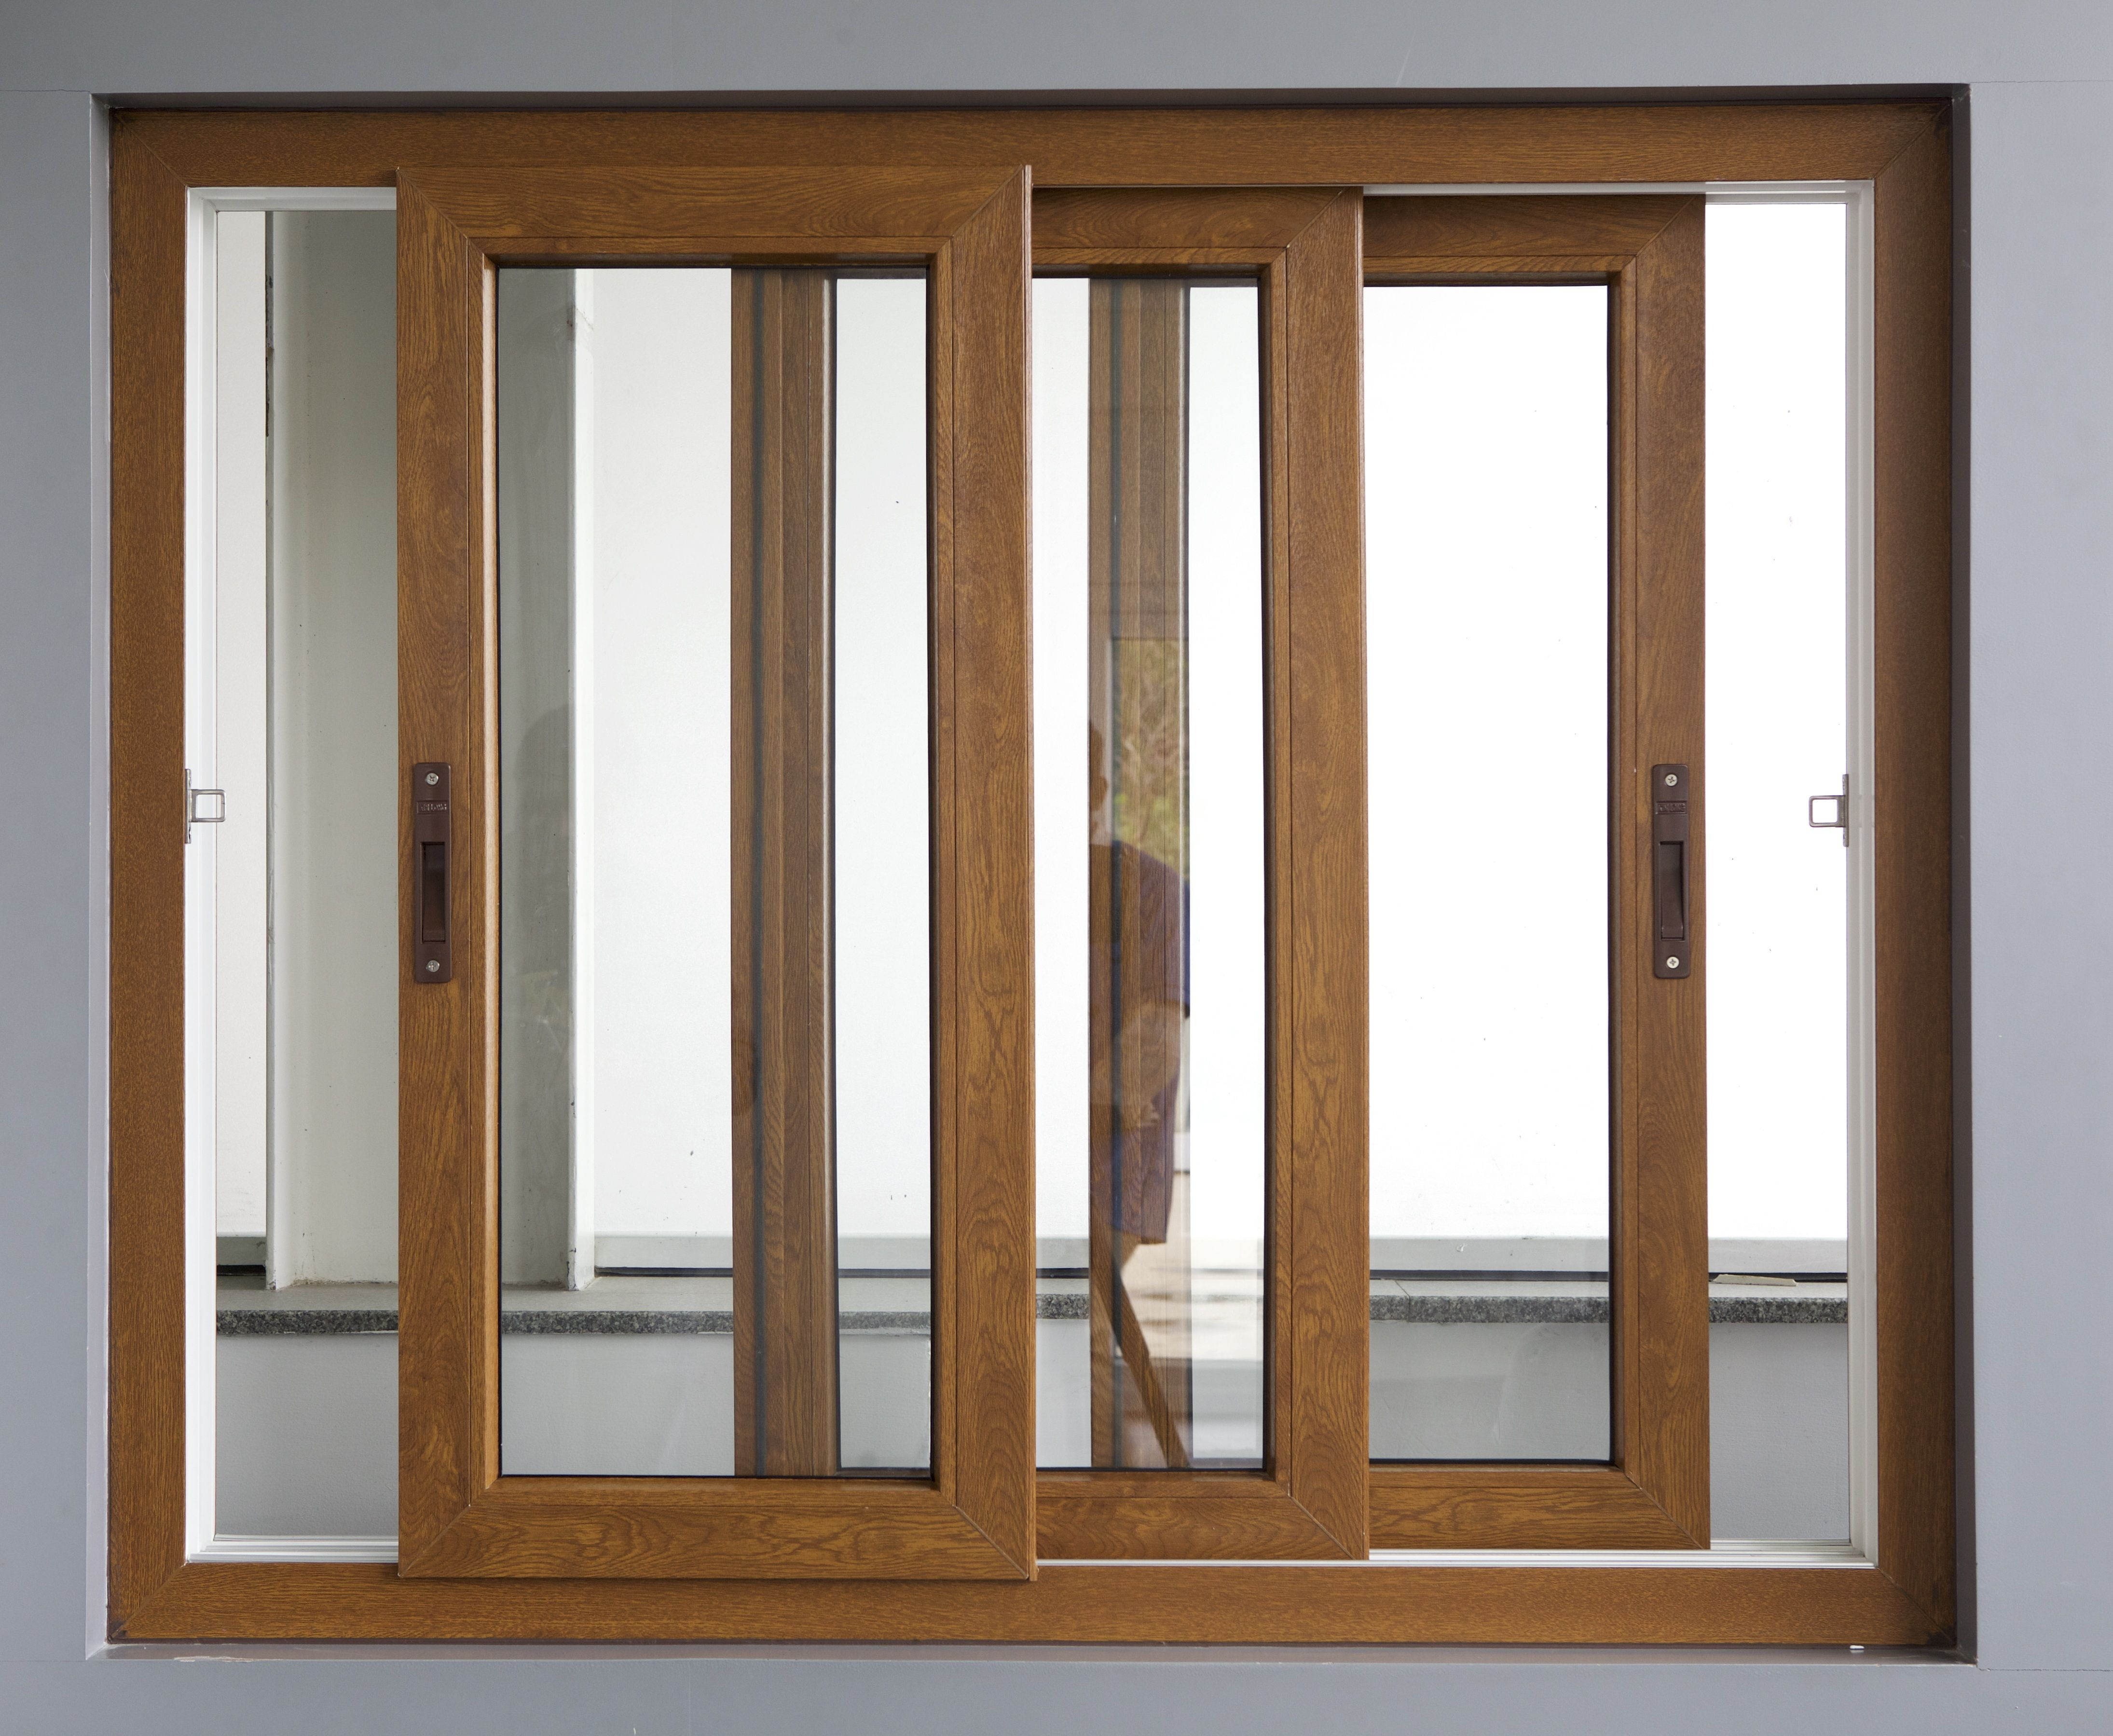 We Specialize In Designing Different Types Of Upvc Windows